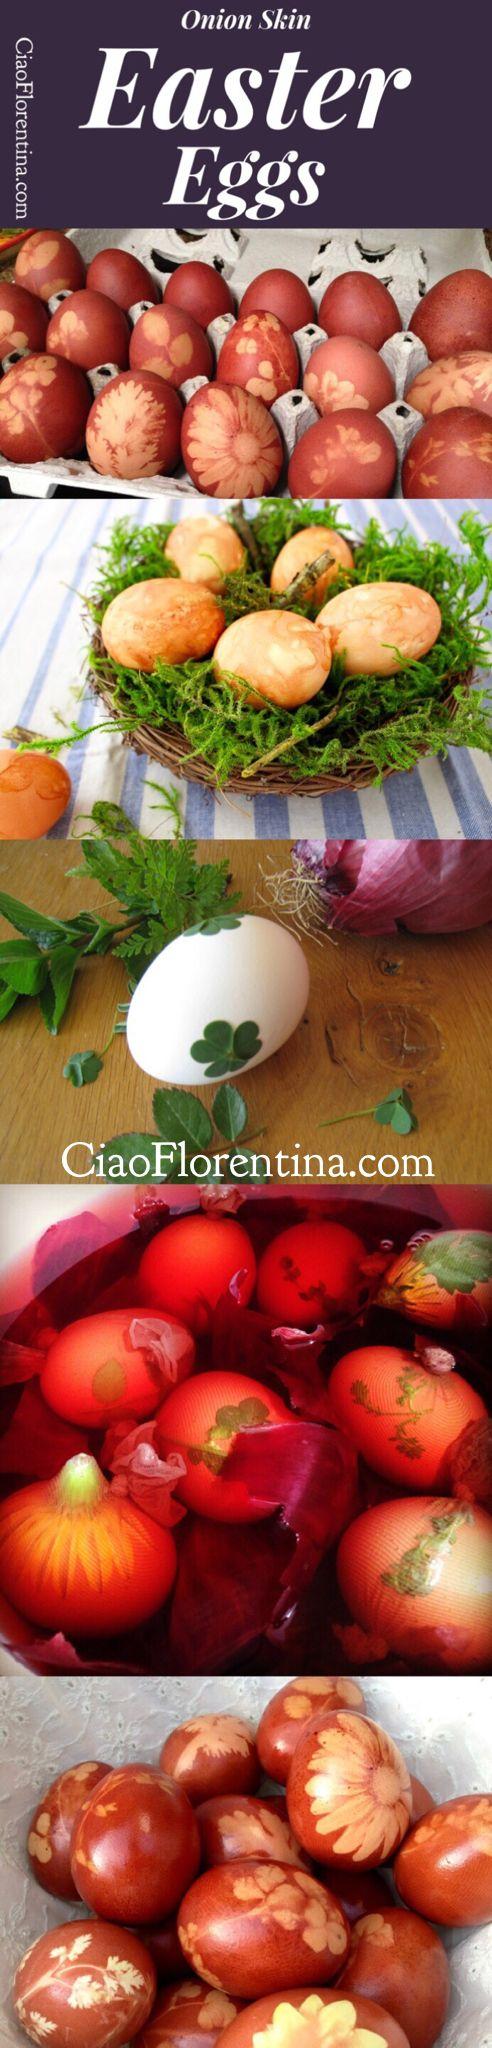 Oriasi buborekok 87 - Diy Onion Skin Easter Eggs With Herbs And Flowers Ciaoflorentina Com Ciaoflorentina